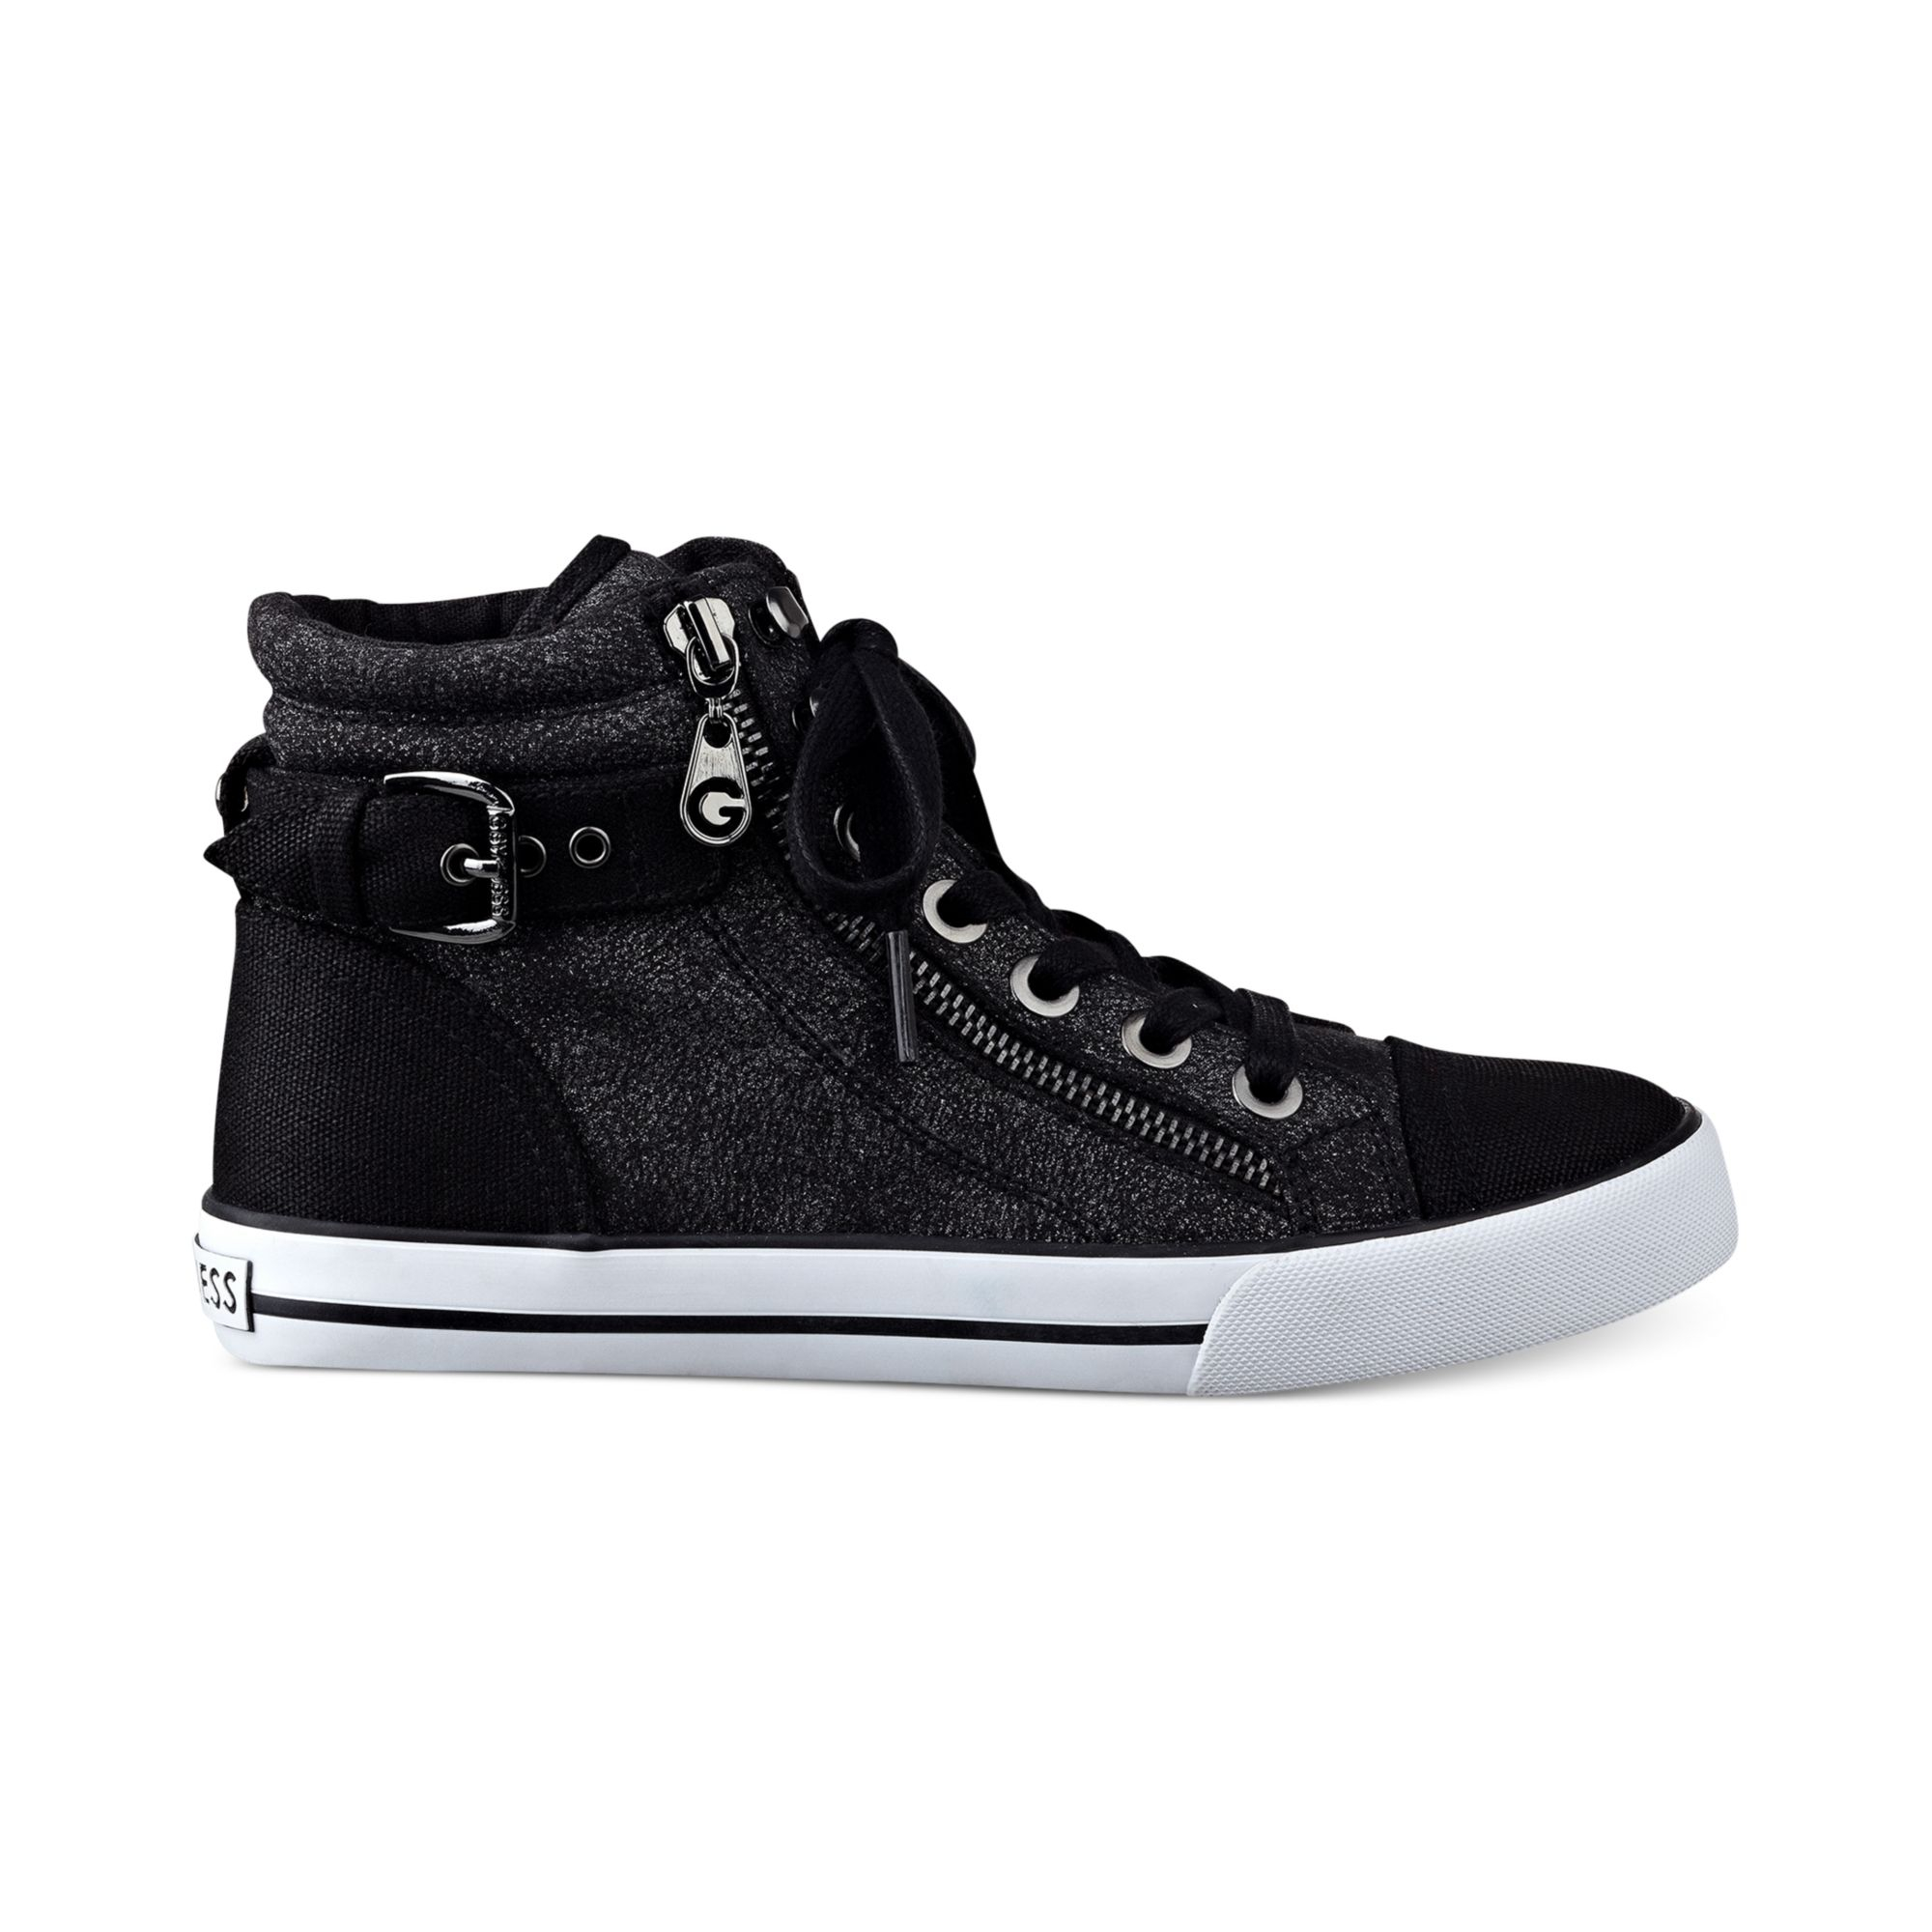 high top sneakers for women - photo #20